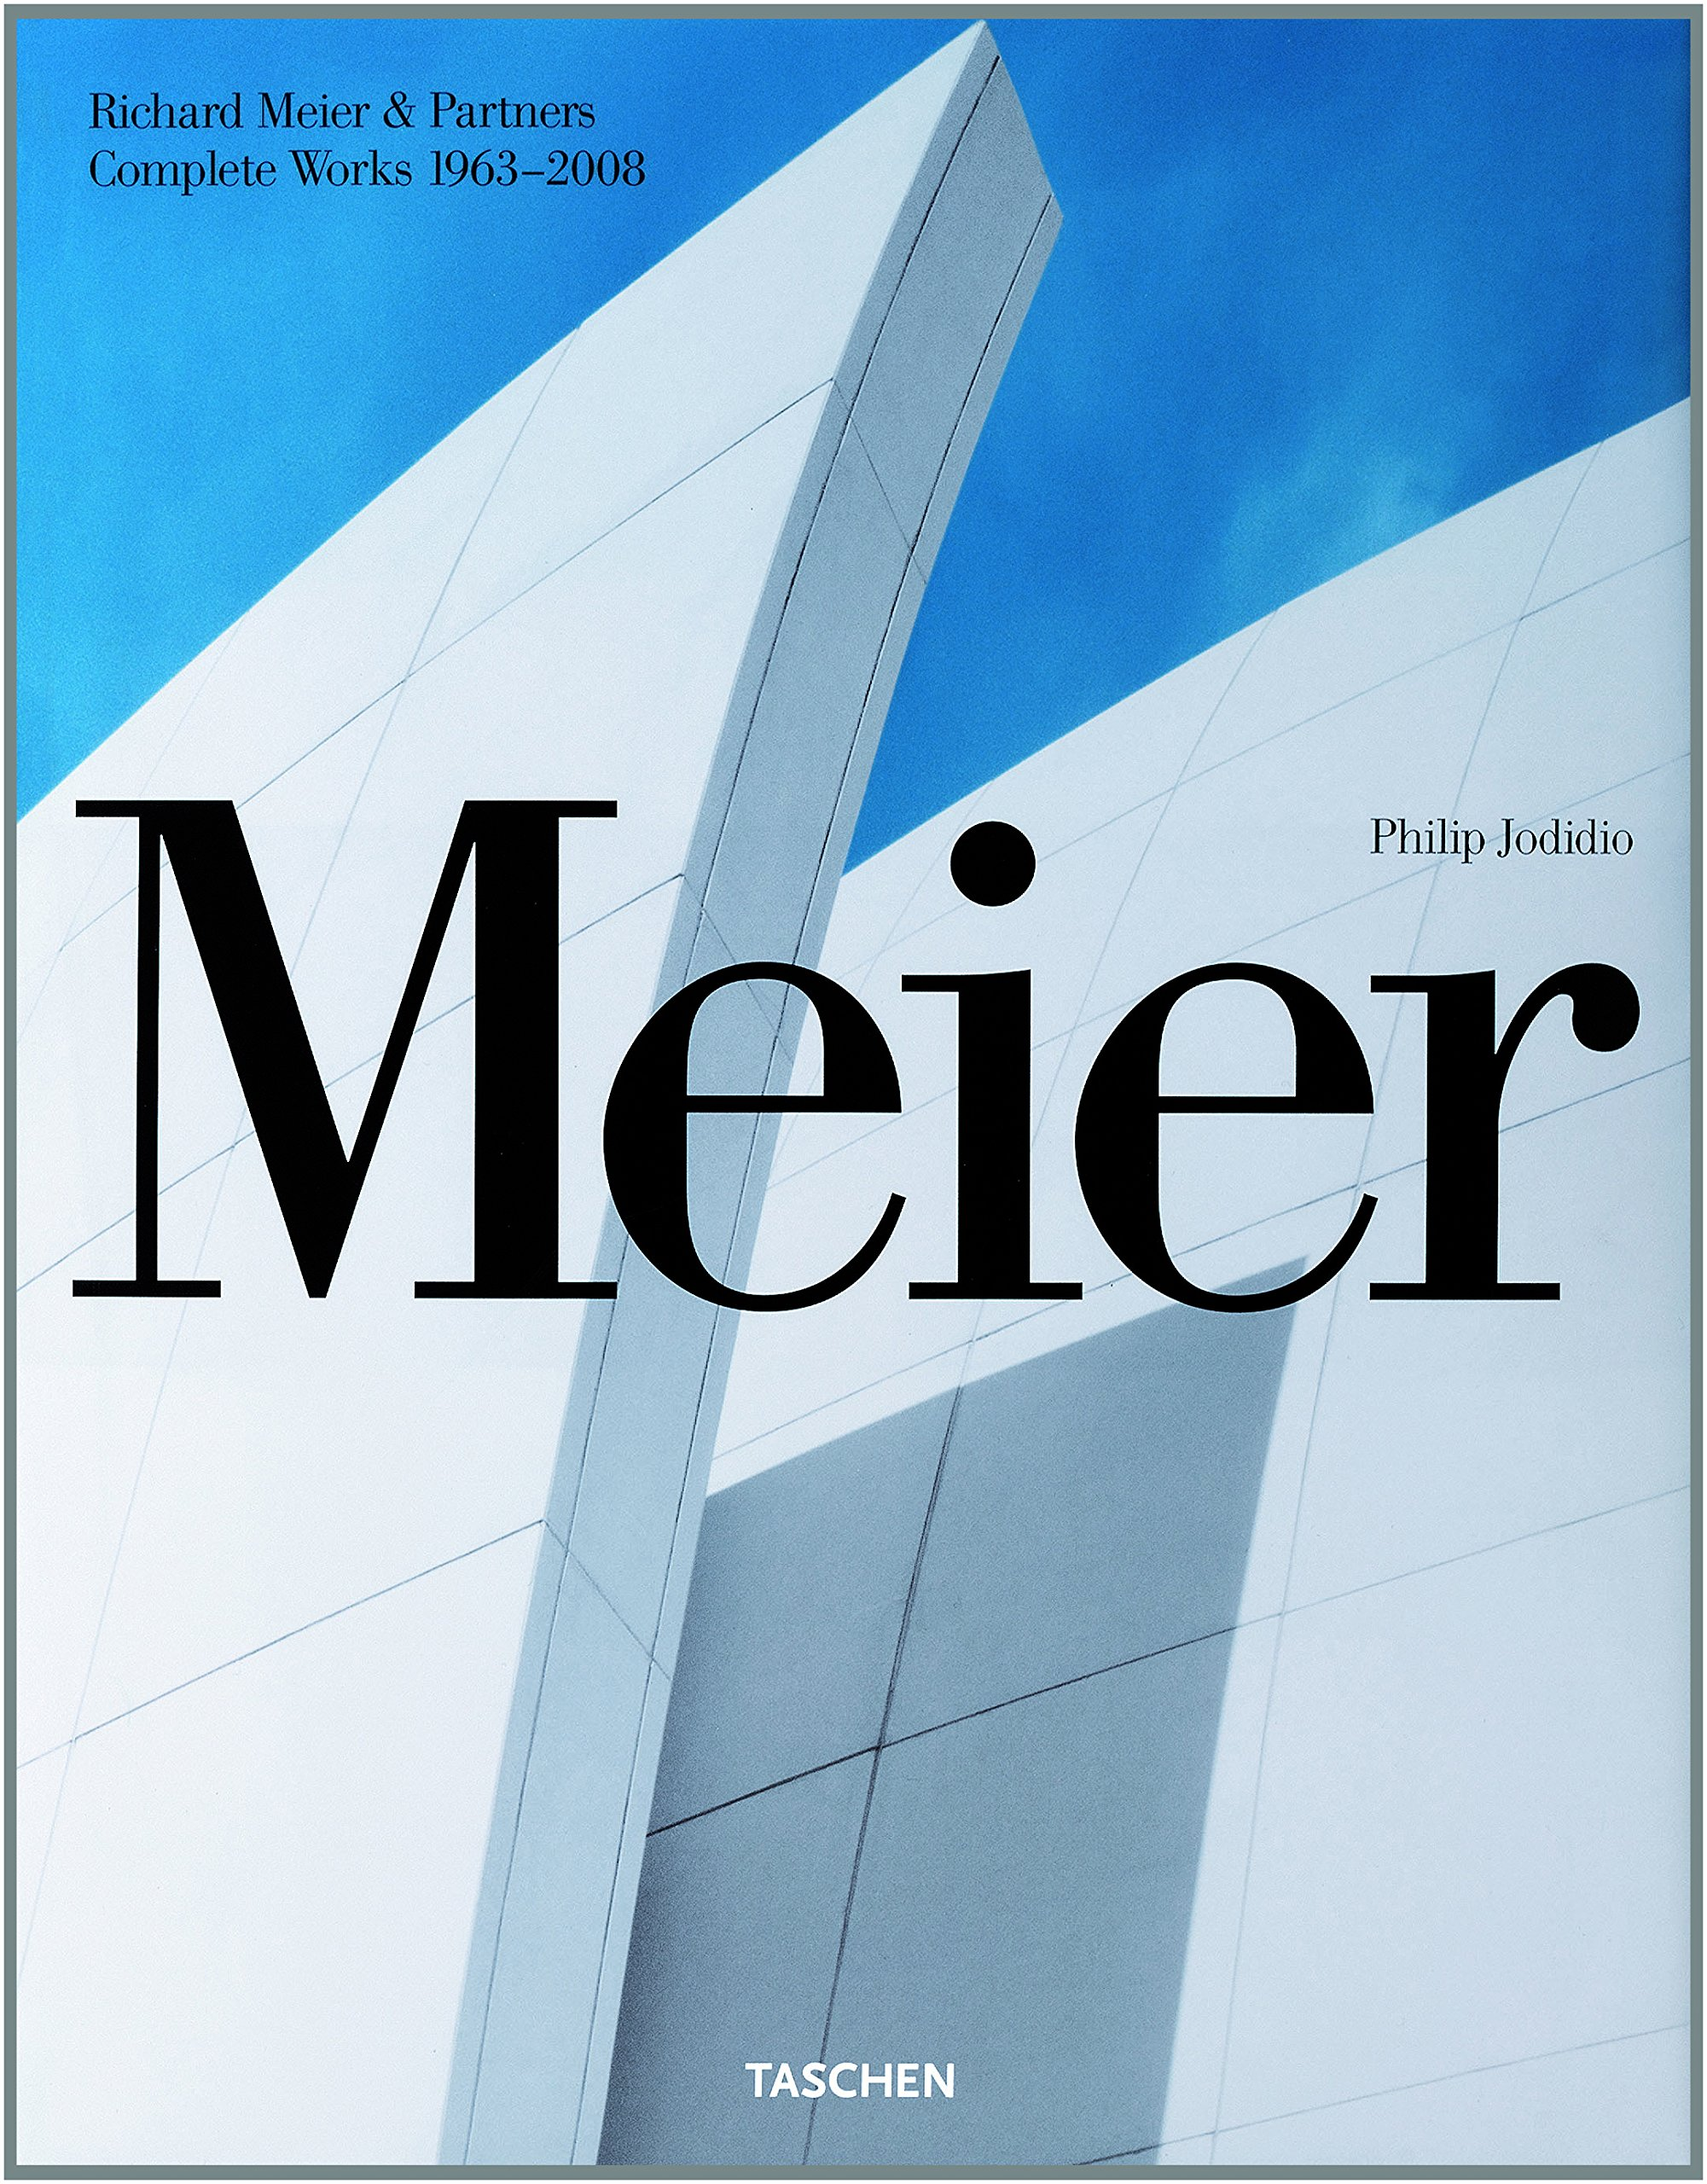 Meier. Ediz. illustrata Copertina rigida – 30 apr 2008 Philip Jodidio Taschen 3822836842 Architecture